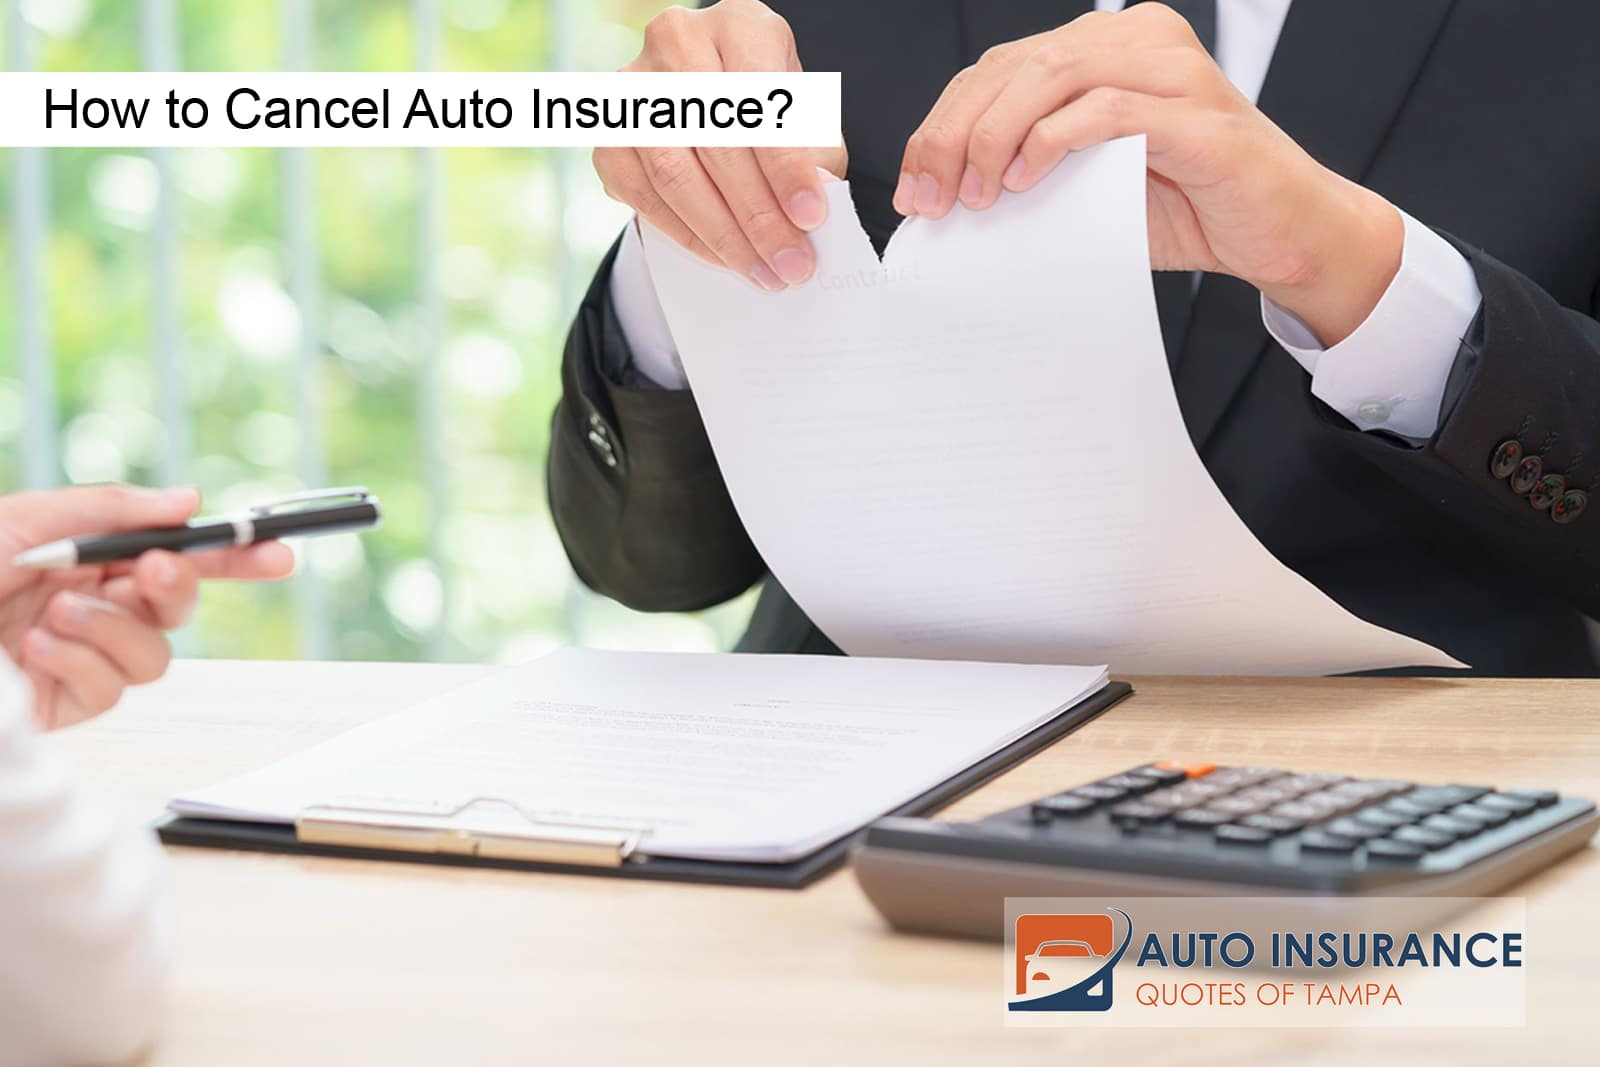 How to Cancel Auto Insurance?